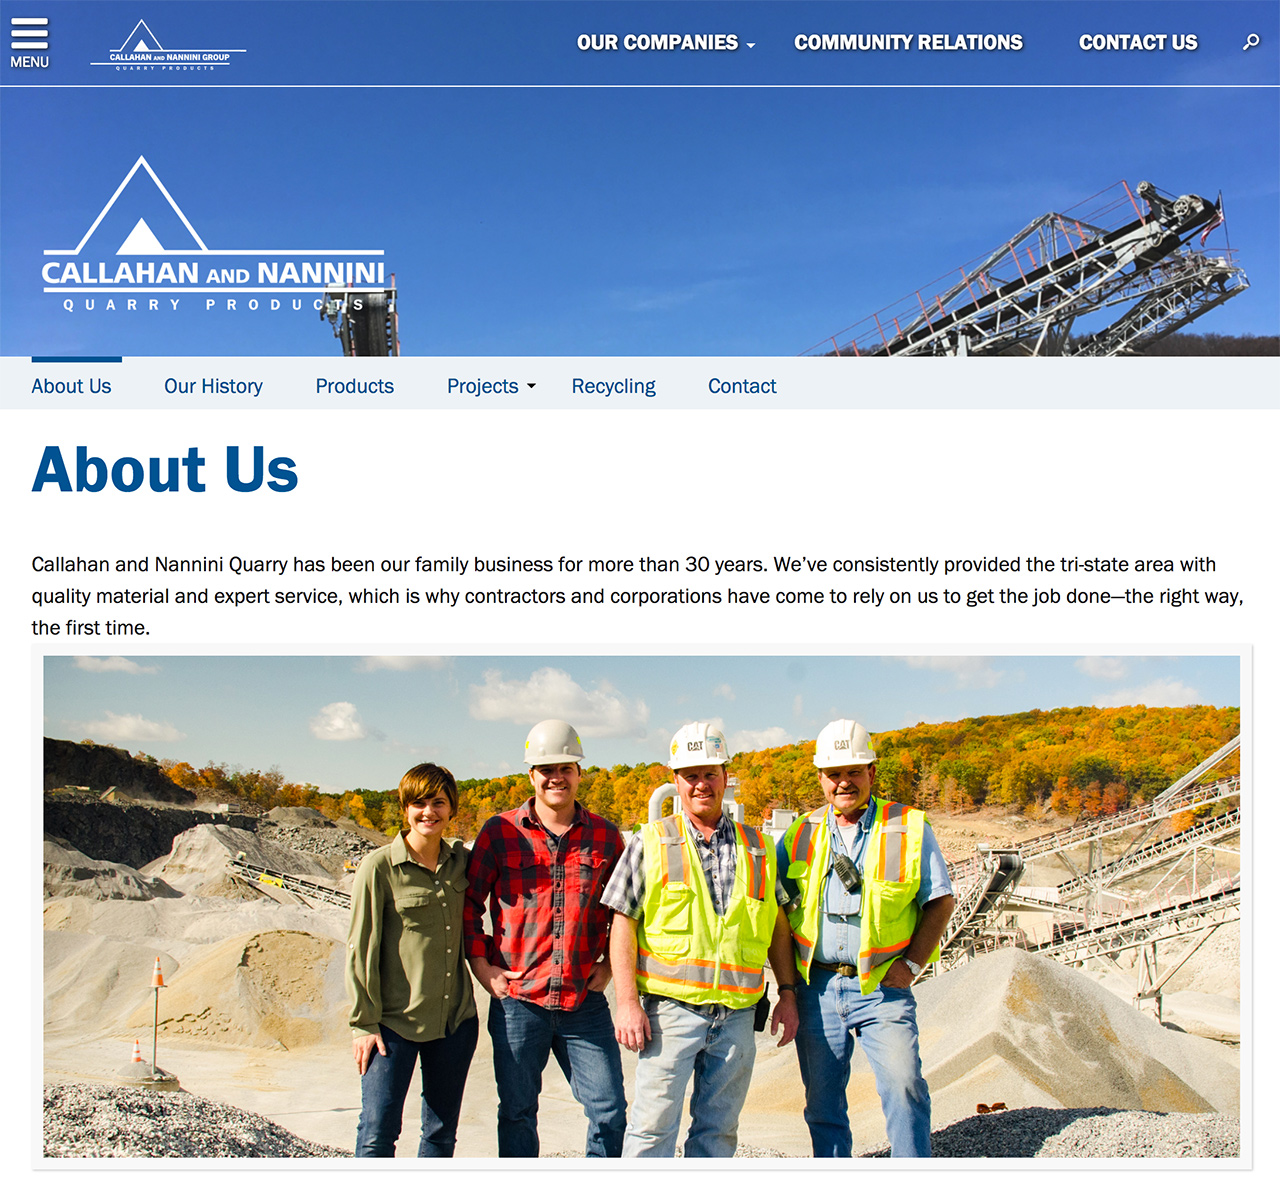 Callahan and Nannini Group: Callahan and Nannini Group About Us